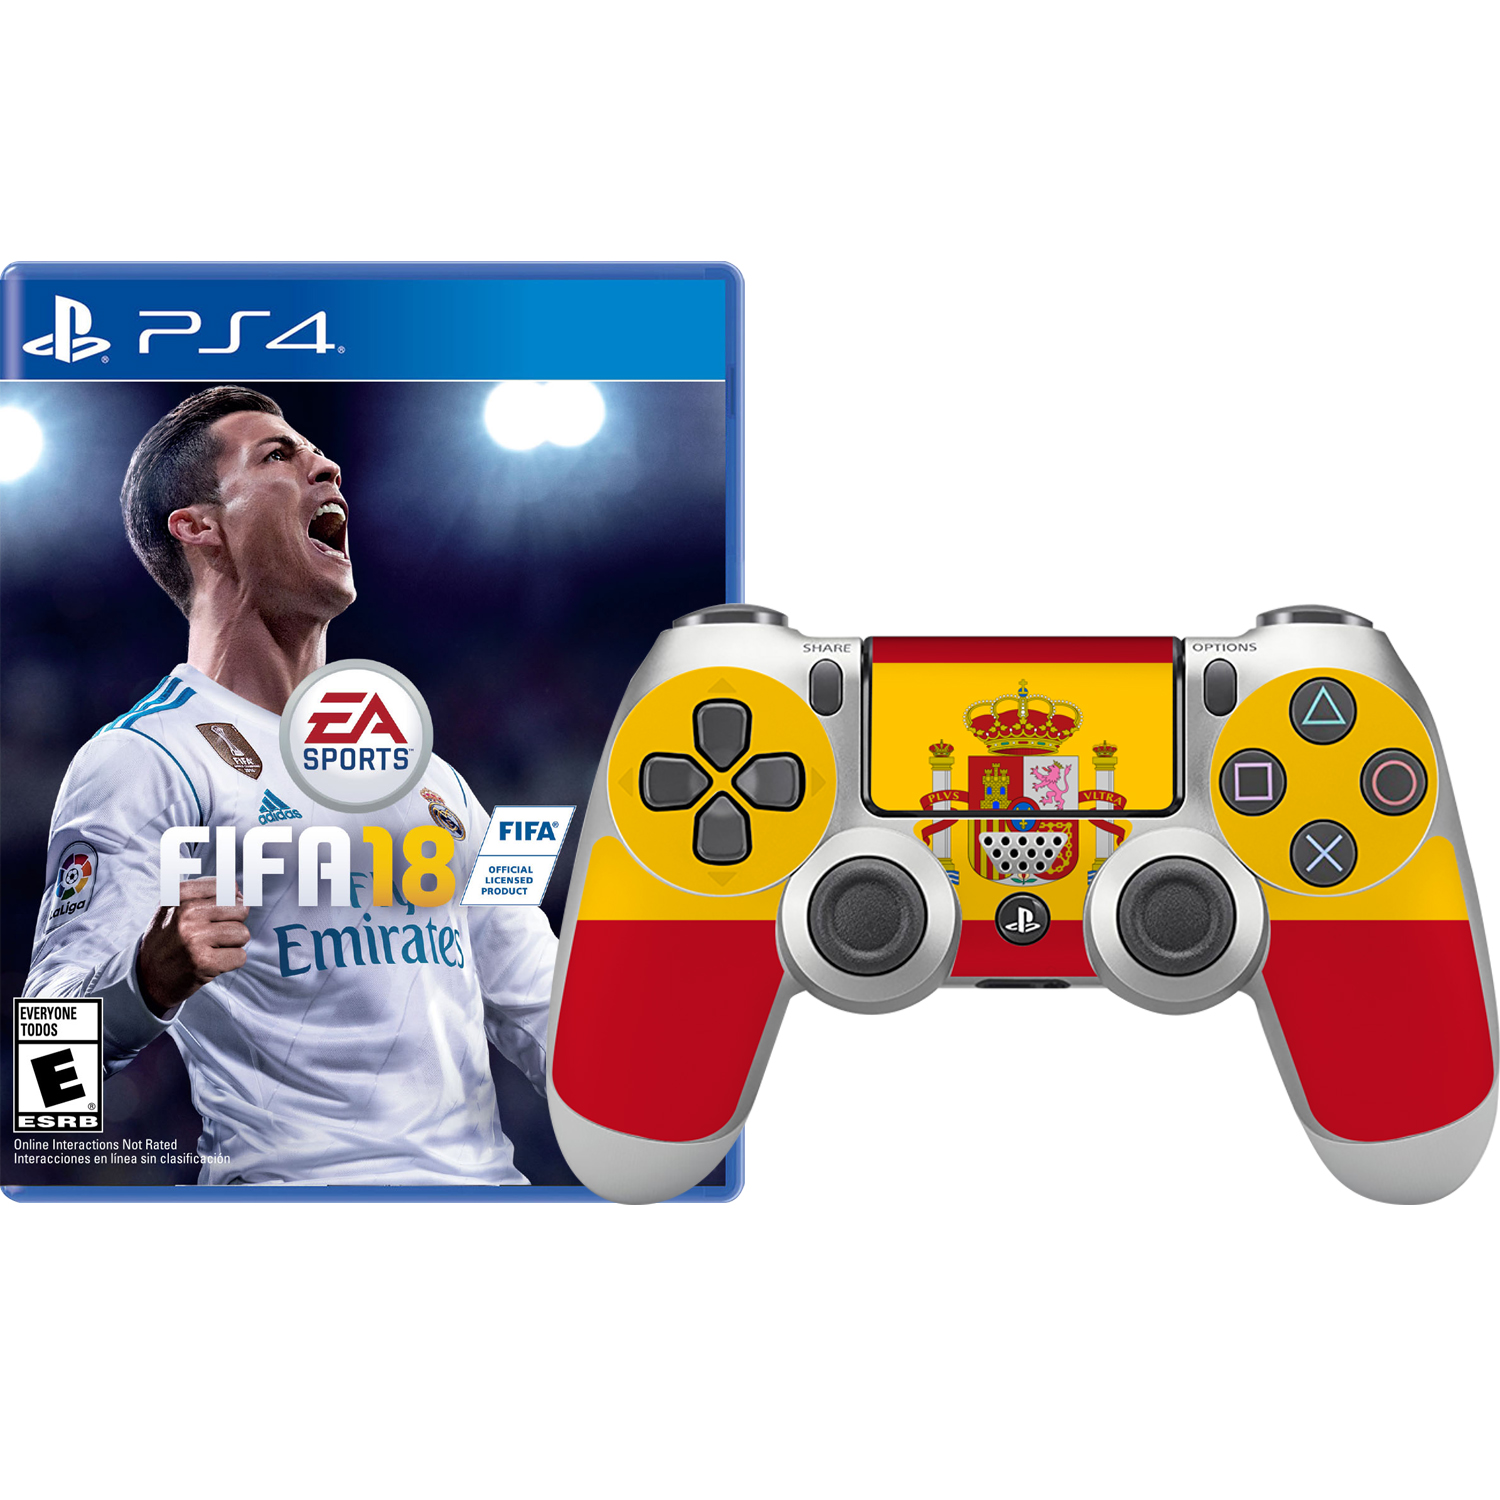 FIFA 18 and Spain Skin Controller, Electronic Arts, PlayStation 4, 696055184958